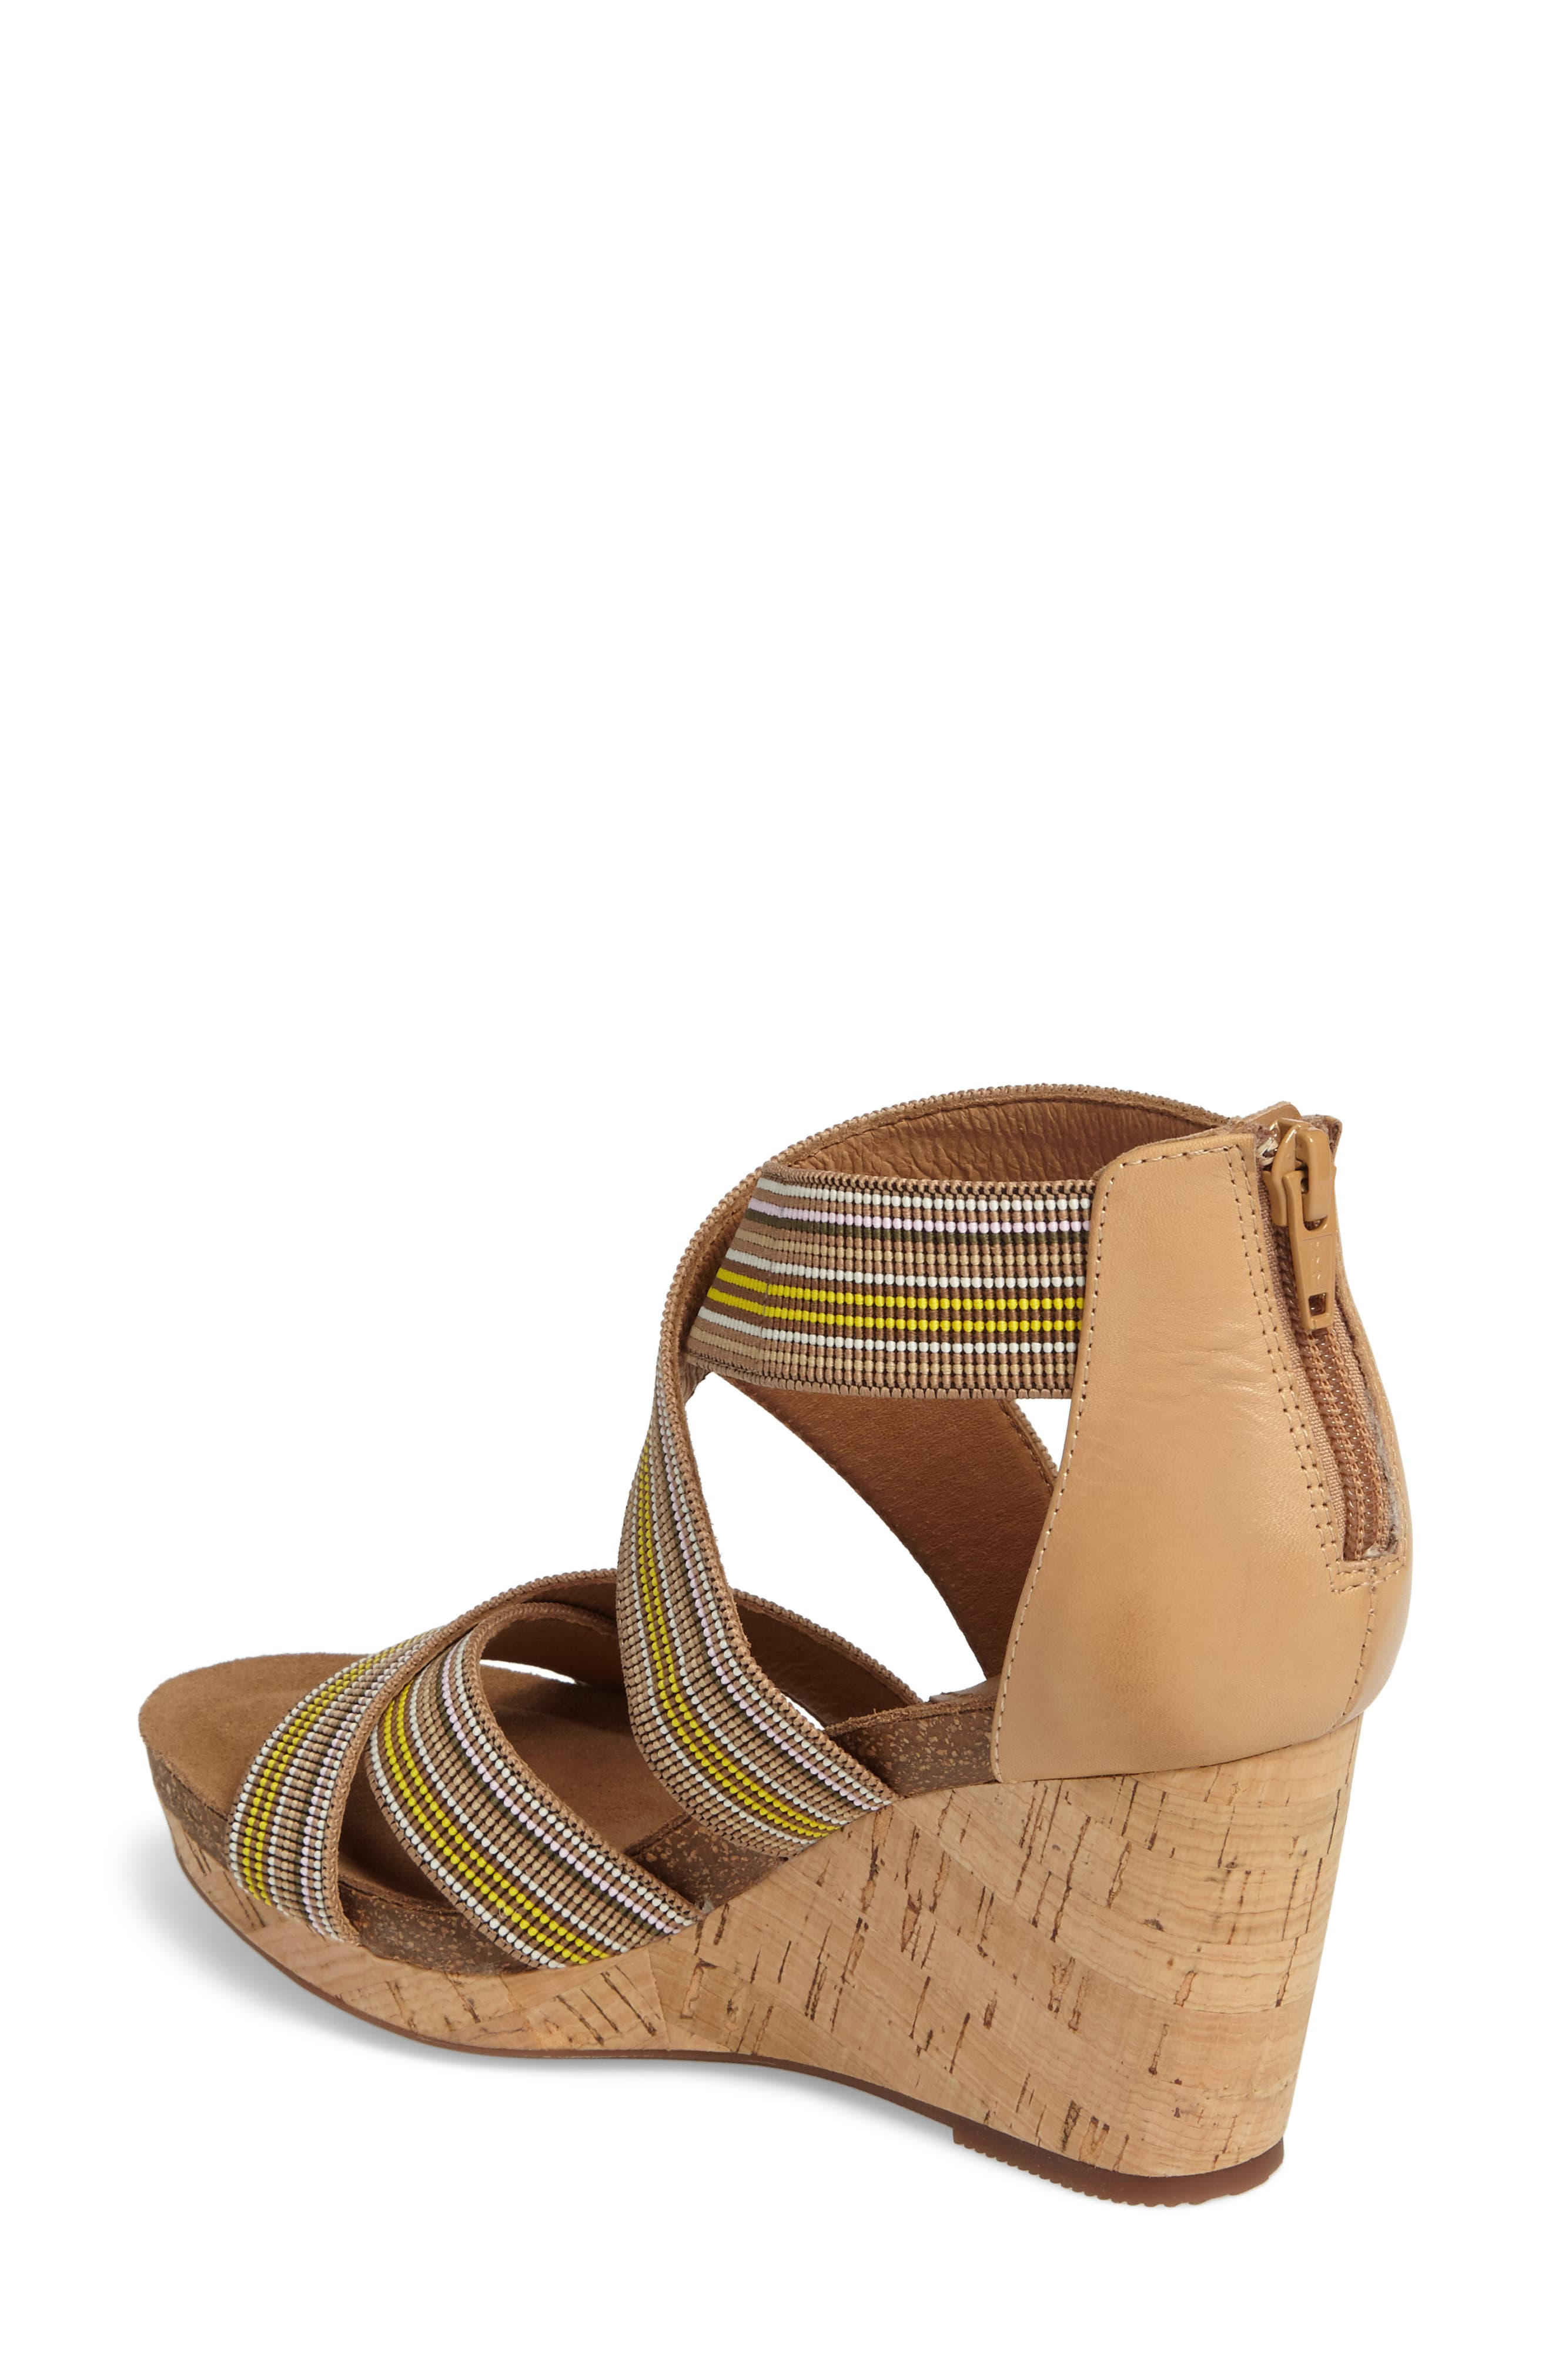 Cary Cross Strap Wedge Sandal,                             Alternate thumbnail 4, color,